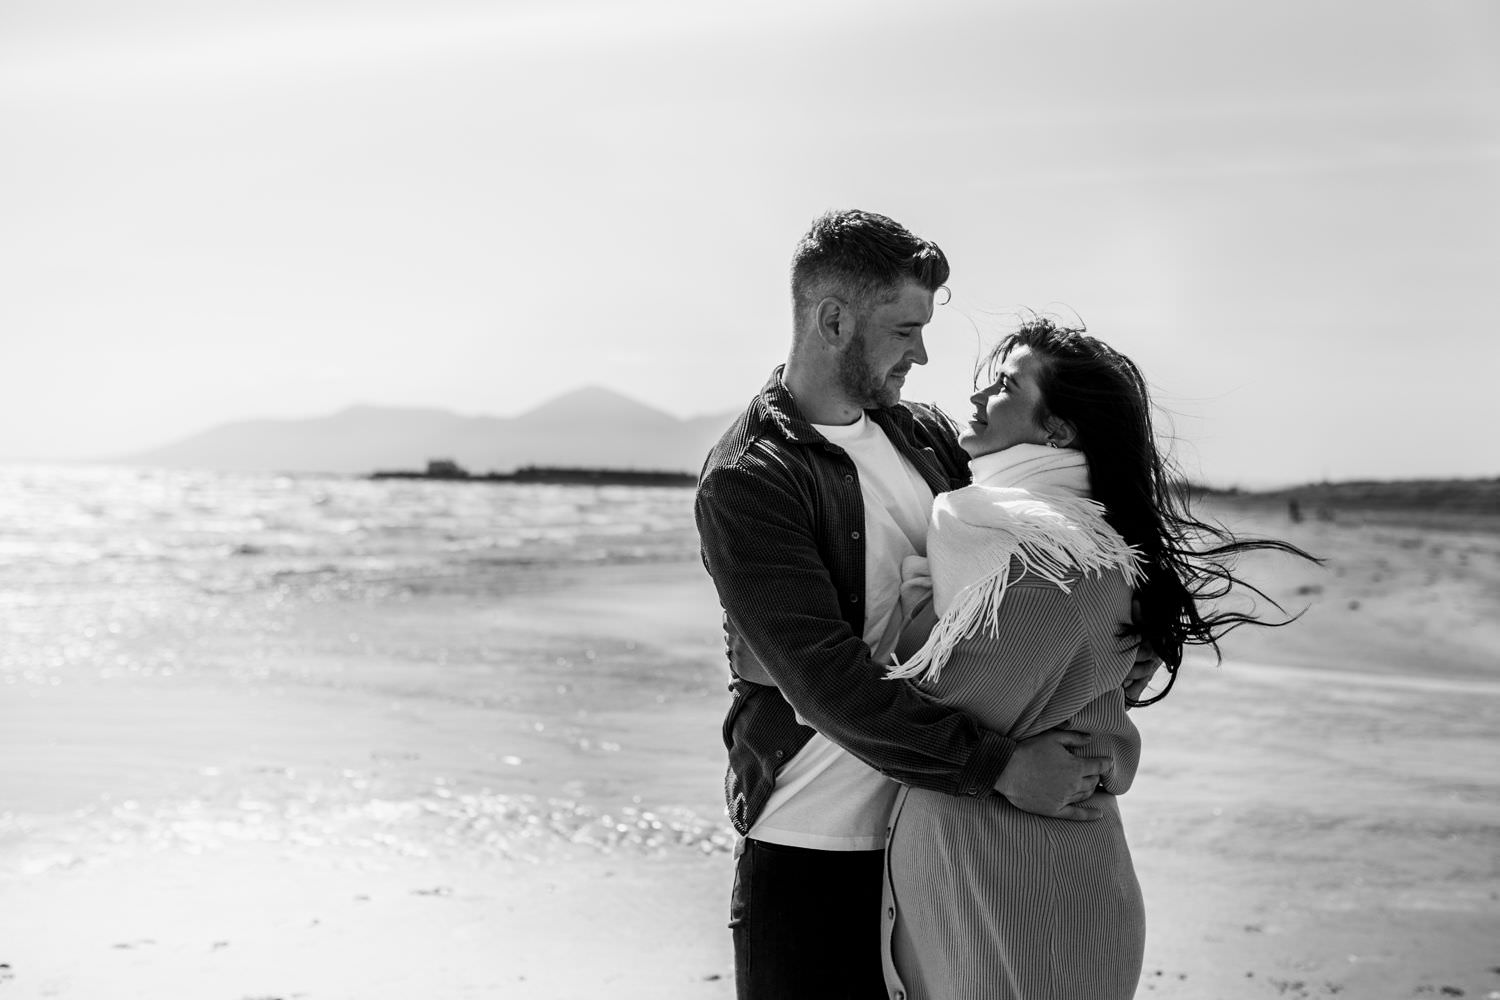 Couple engagement at the beach, Northern Ireland, Mourne Mountains in background